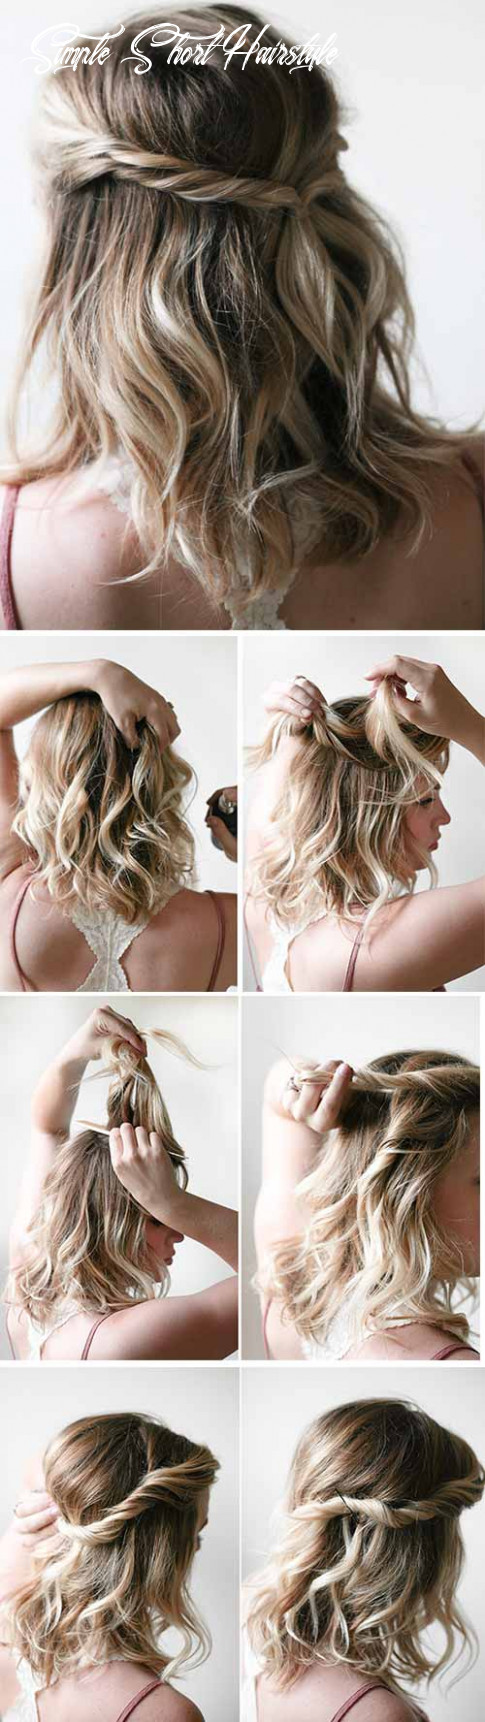 9 incredible diy short hairstyles a step by step guide simple short hairstyle